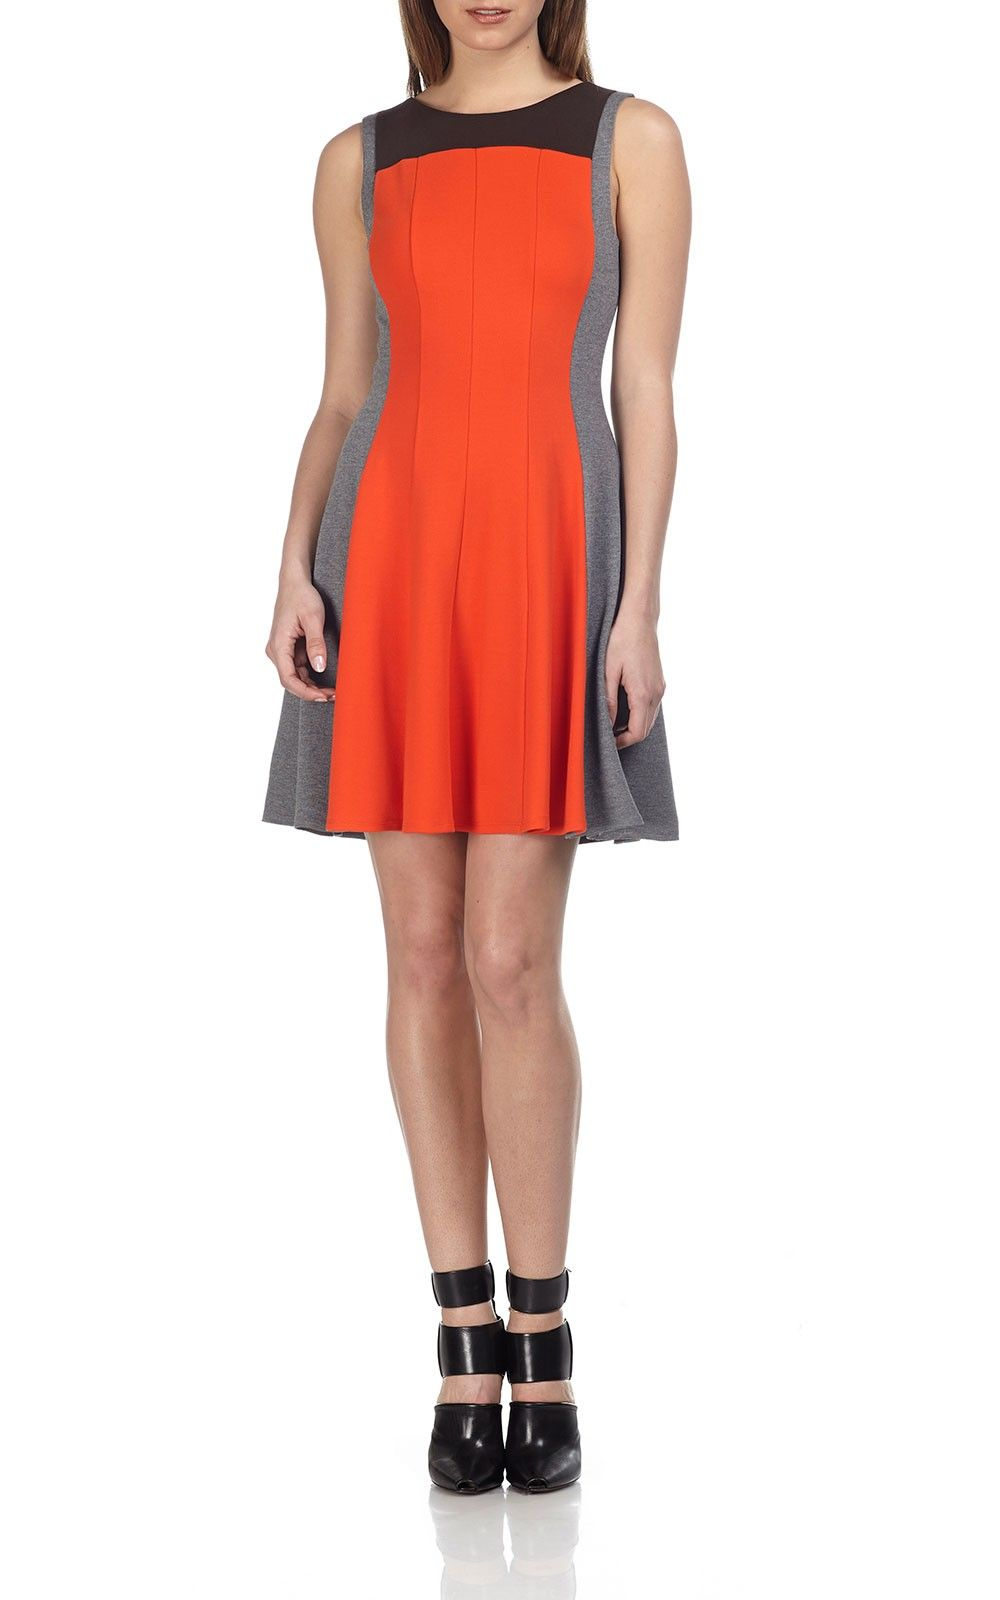 Too too too cute and chic! - Gusty Dress by Bailey44, Made in USA